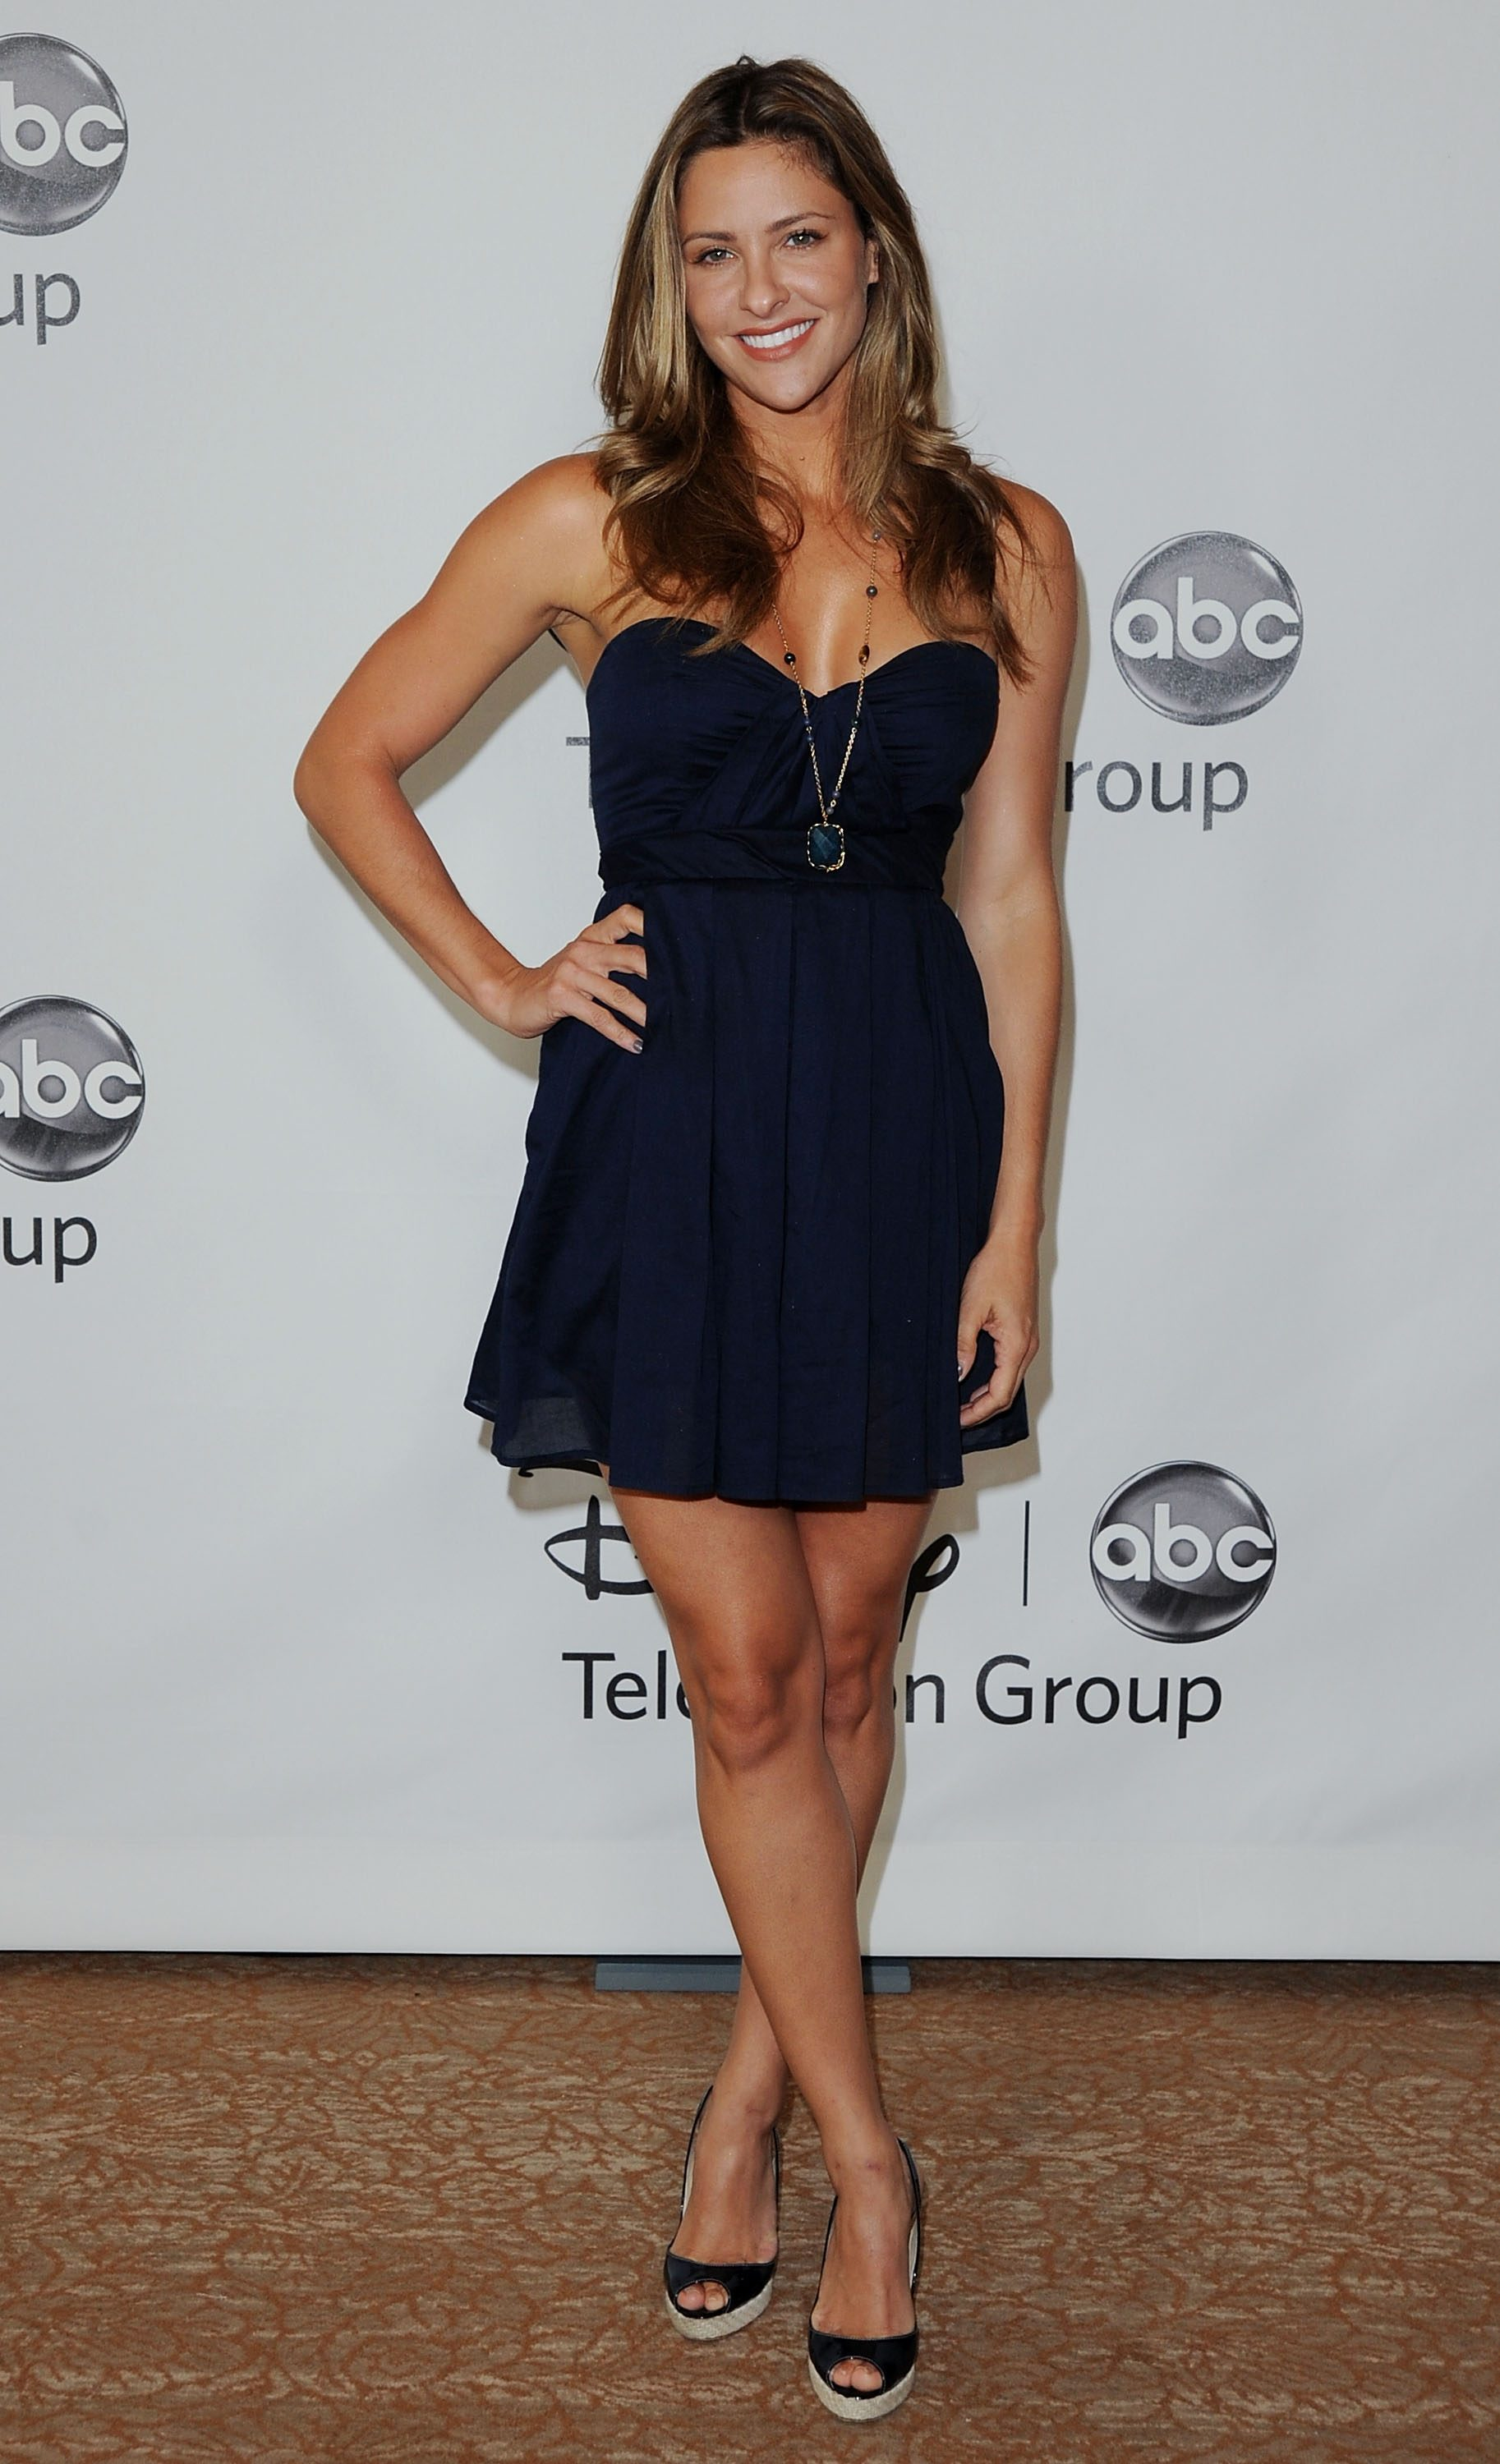 jill wagner wipeout